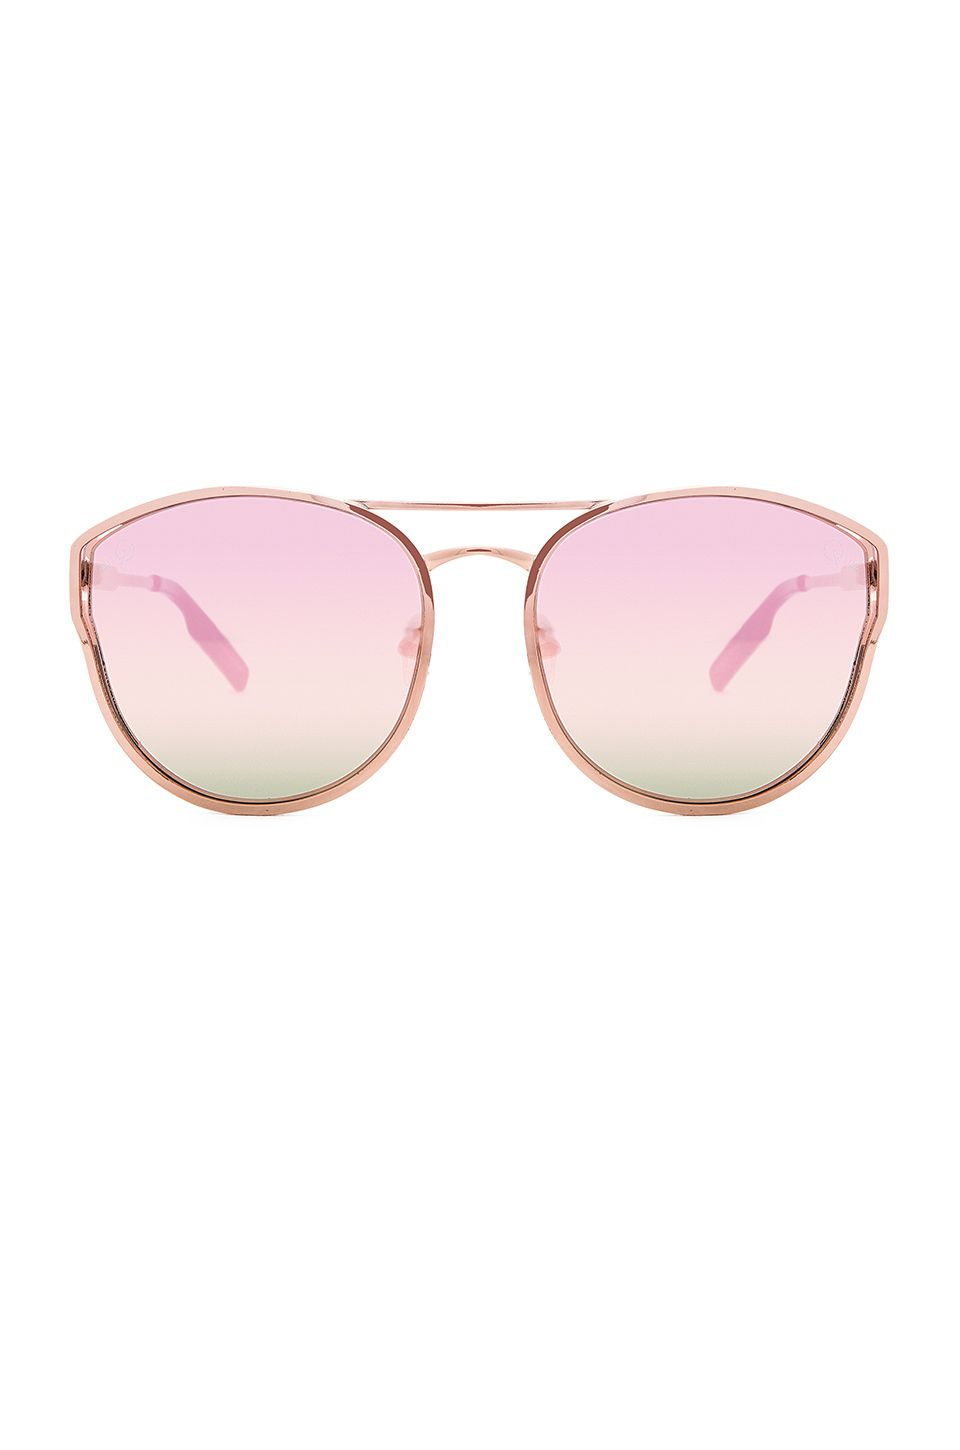 Quay Cherry Bomb Sunglasses in Rose Gold | Sunnies | Pinterest ...